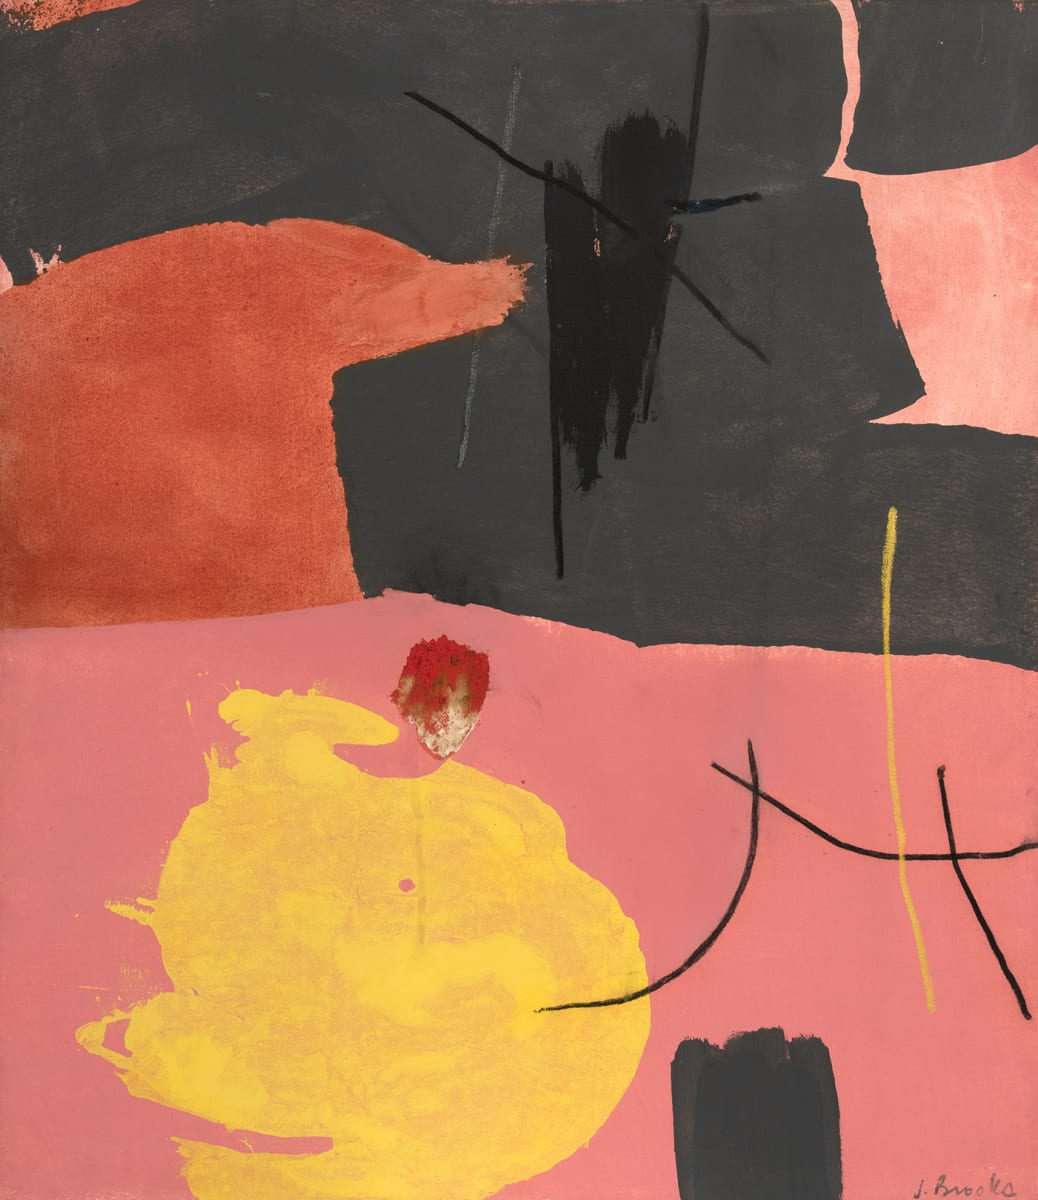 Abstract Expressionist Post-War Selections